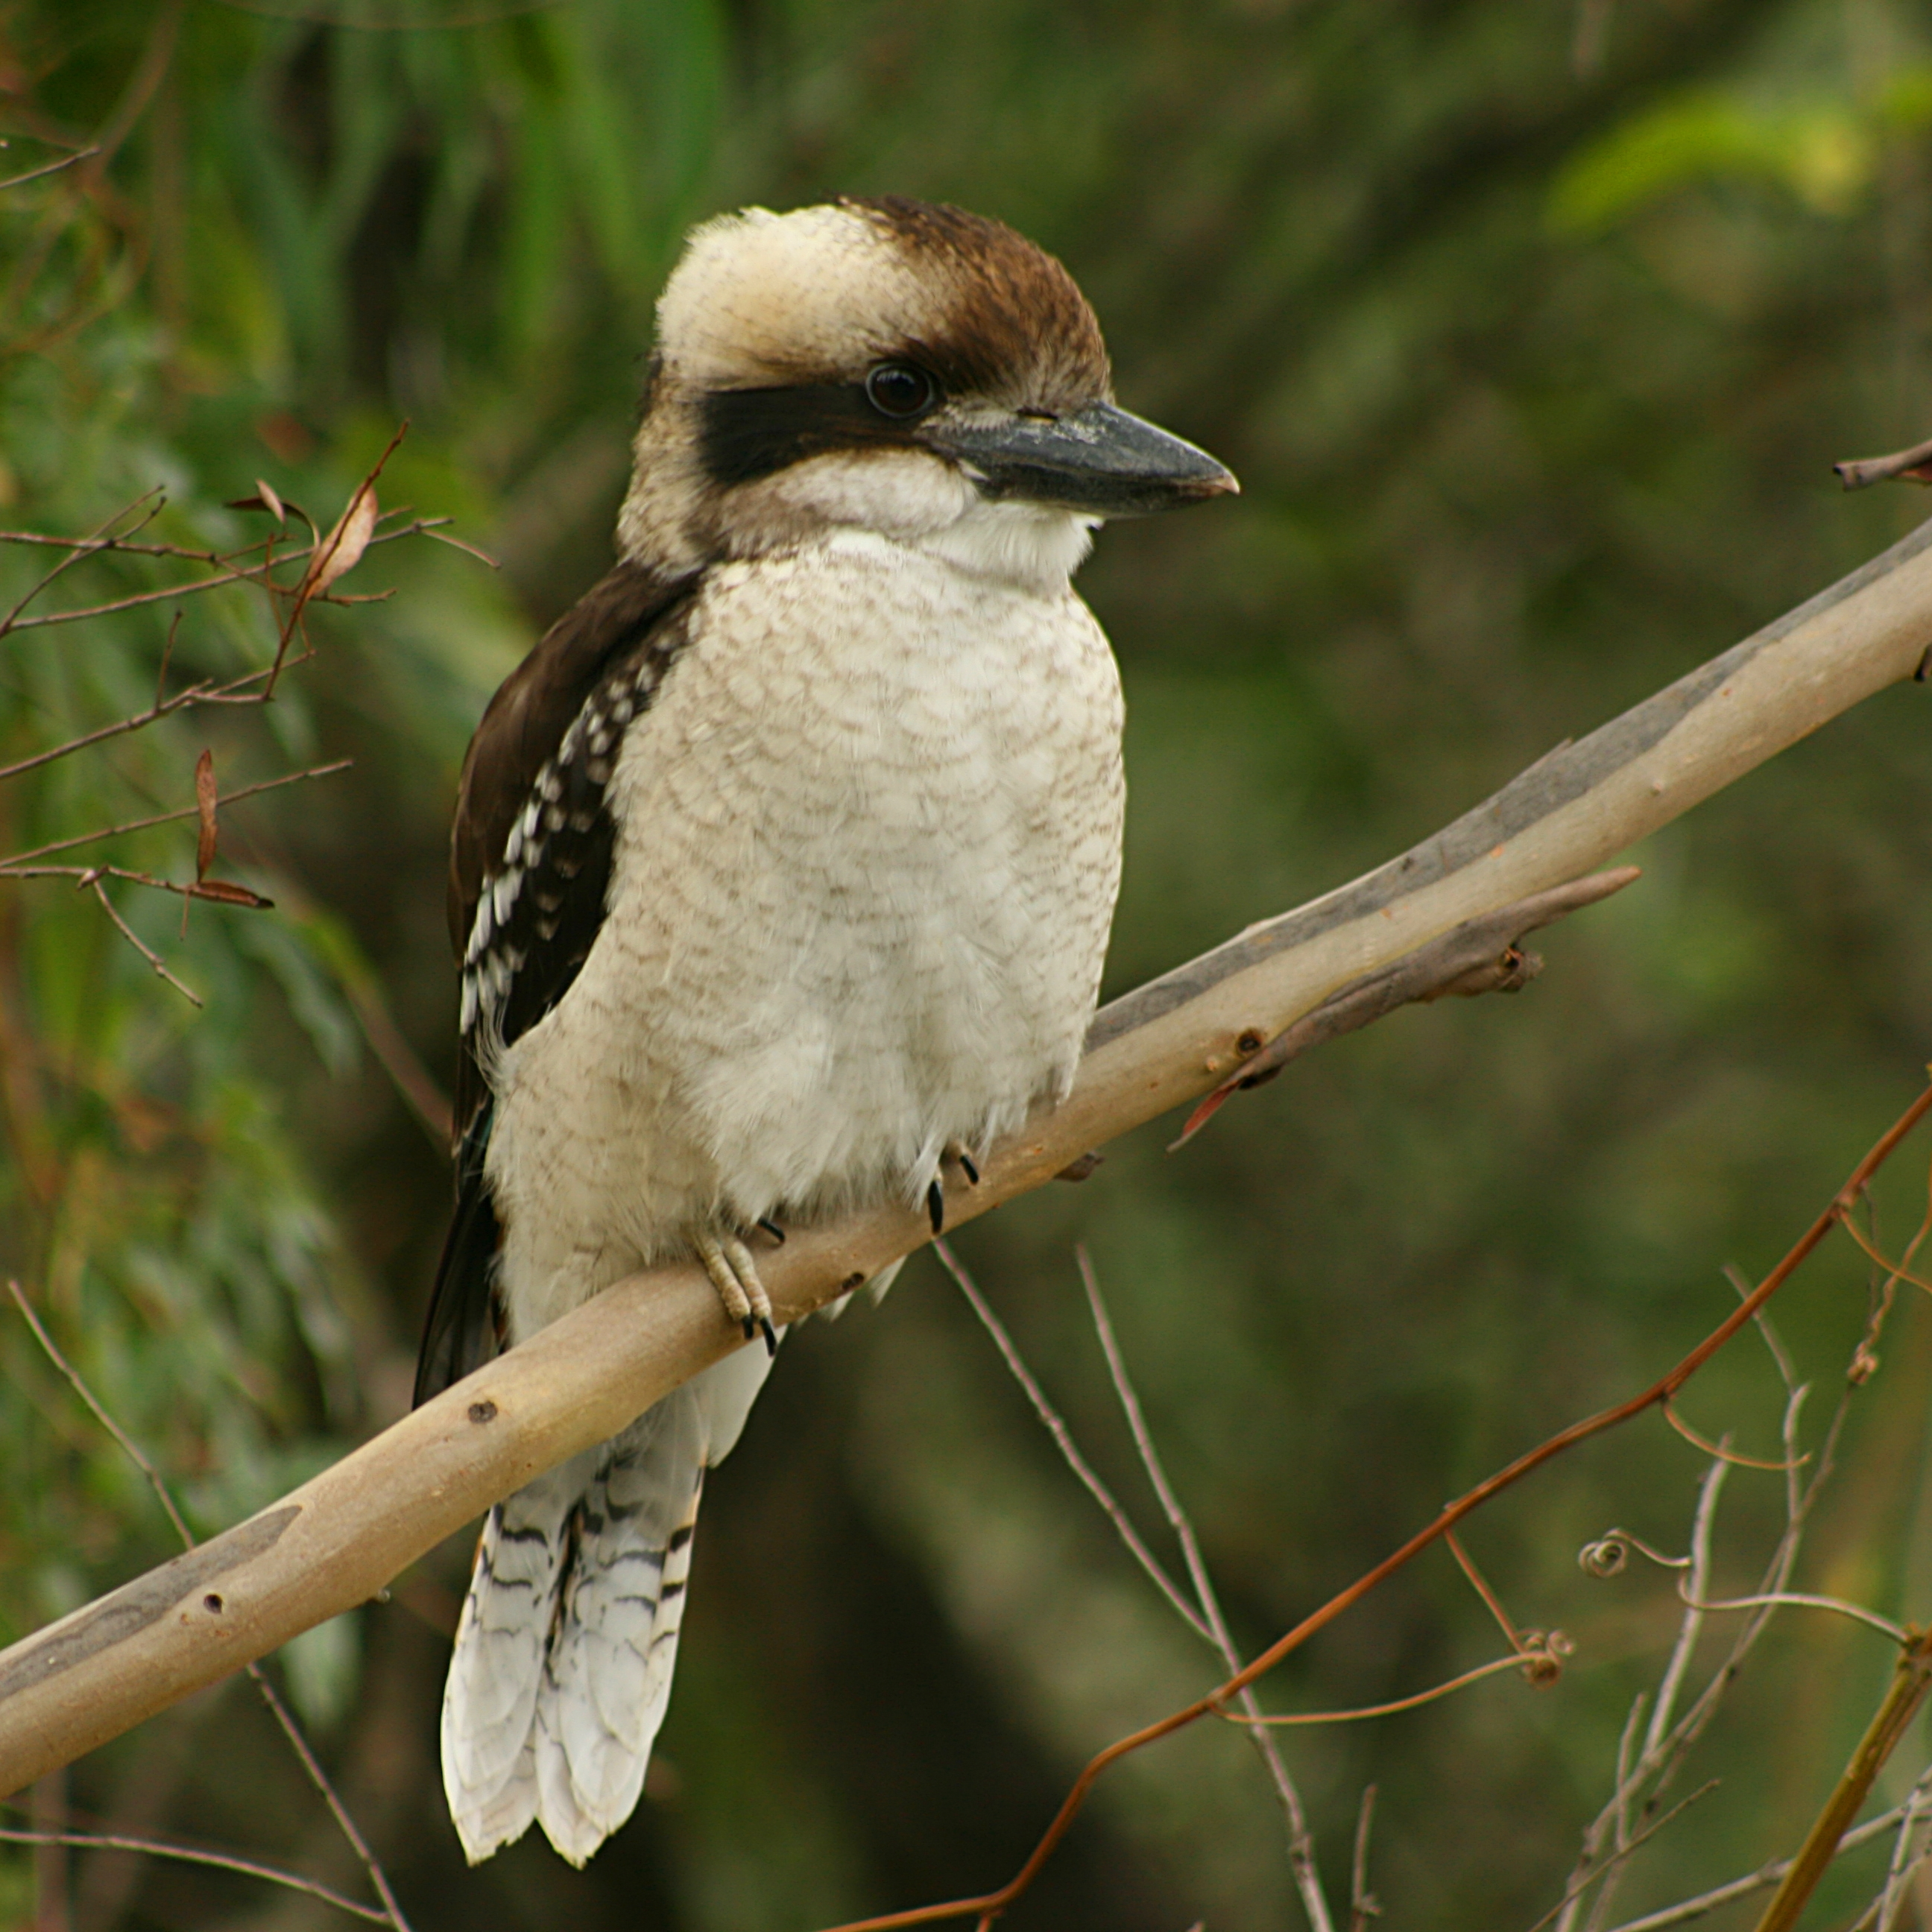 File:Laughing Kookaburra Juvenile Front.jpg - Wikimedia Commons